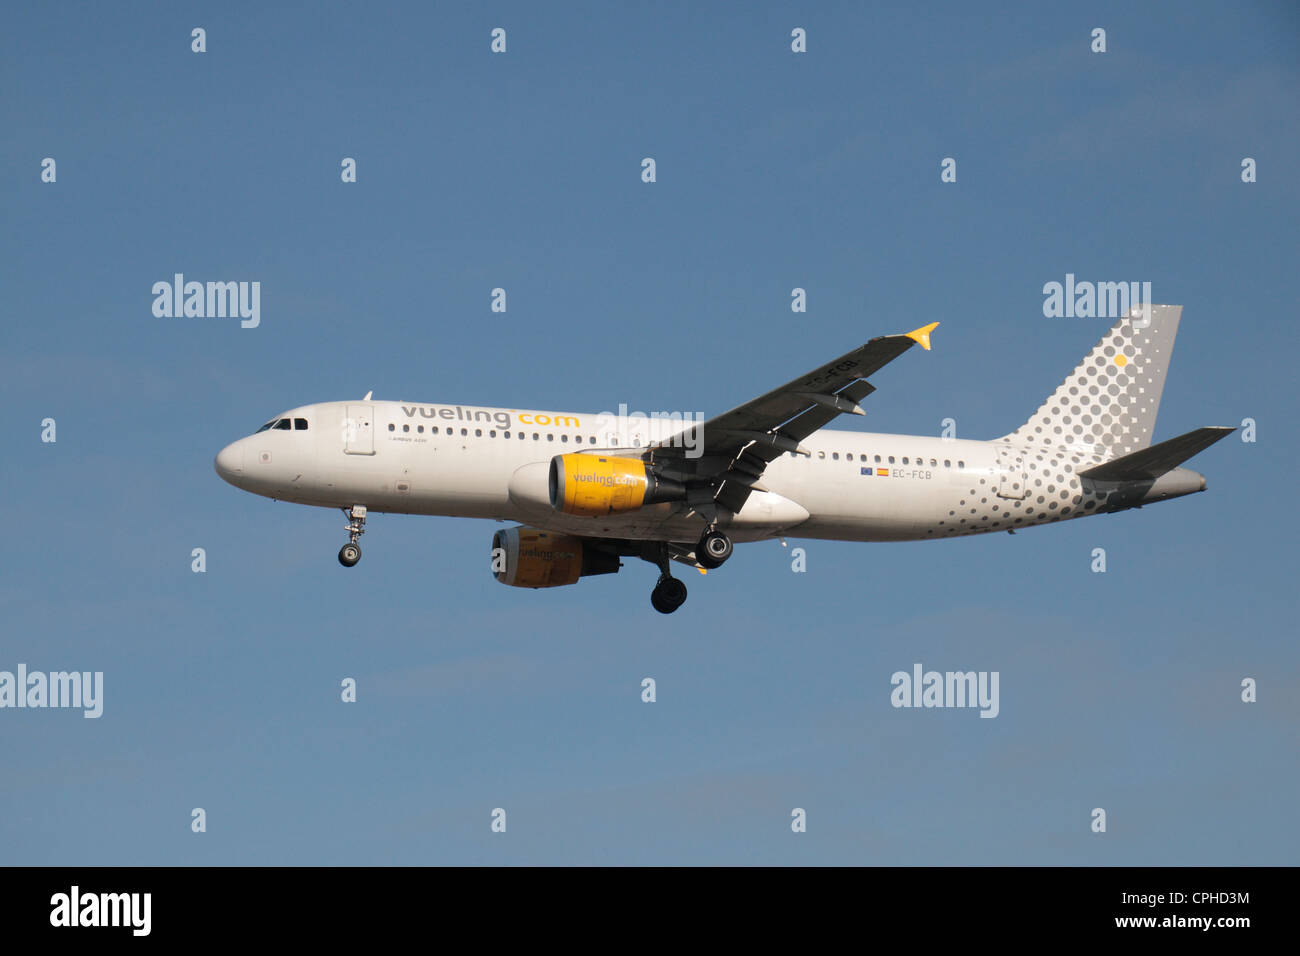 The Vueling Airbus A320-211 (EC-FCB) about to land at Heathrow Airport, London, UK. - Stock Image